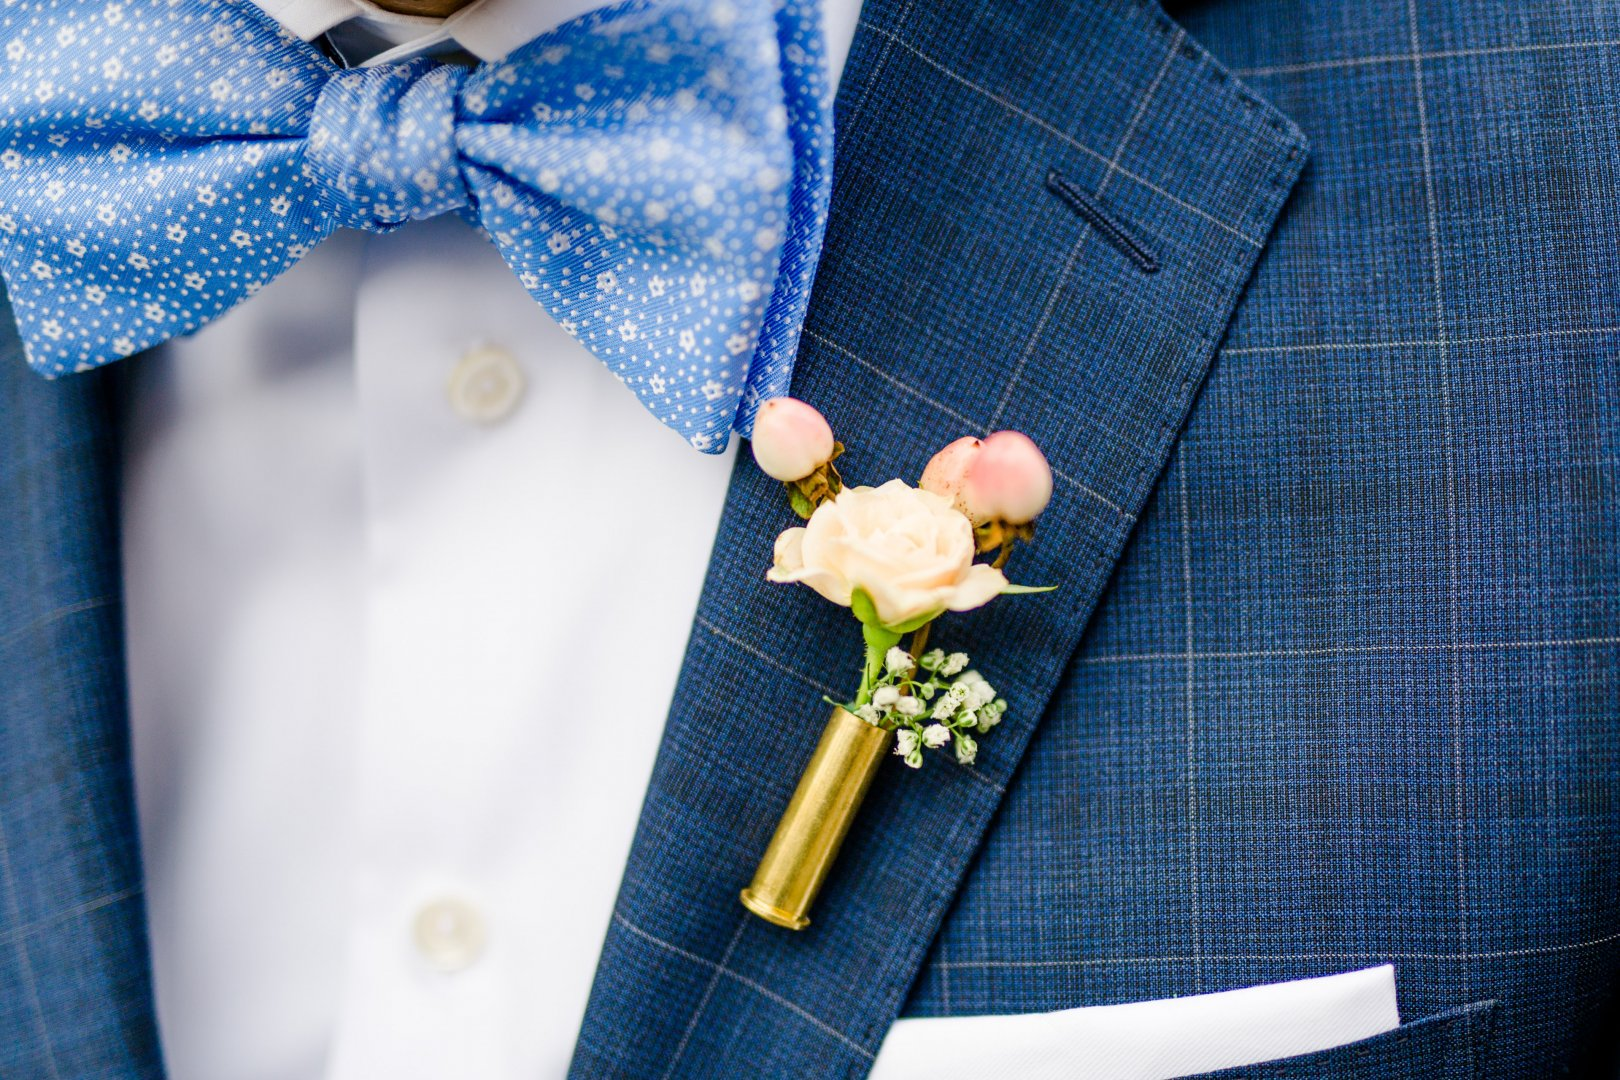 Blue Denim Jeans Clothing Yellow Formal wear Bow tie Suit Button Pink Pocket Outerwear Textile Tie Fashion accessory Tuxedo Flower Plant Photography Pattern Dress Collar Plaid